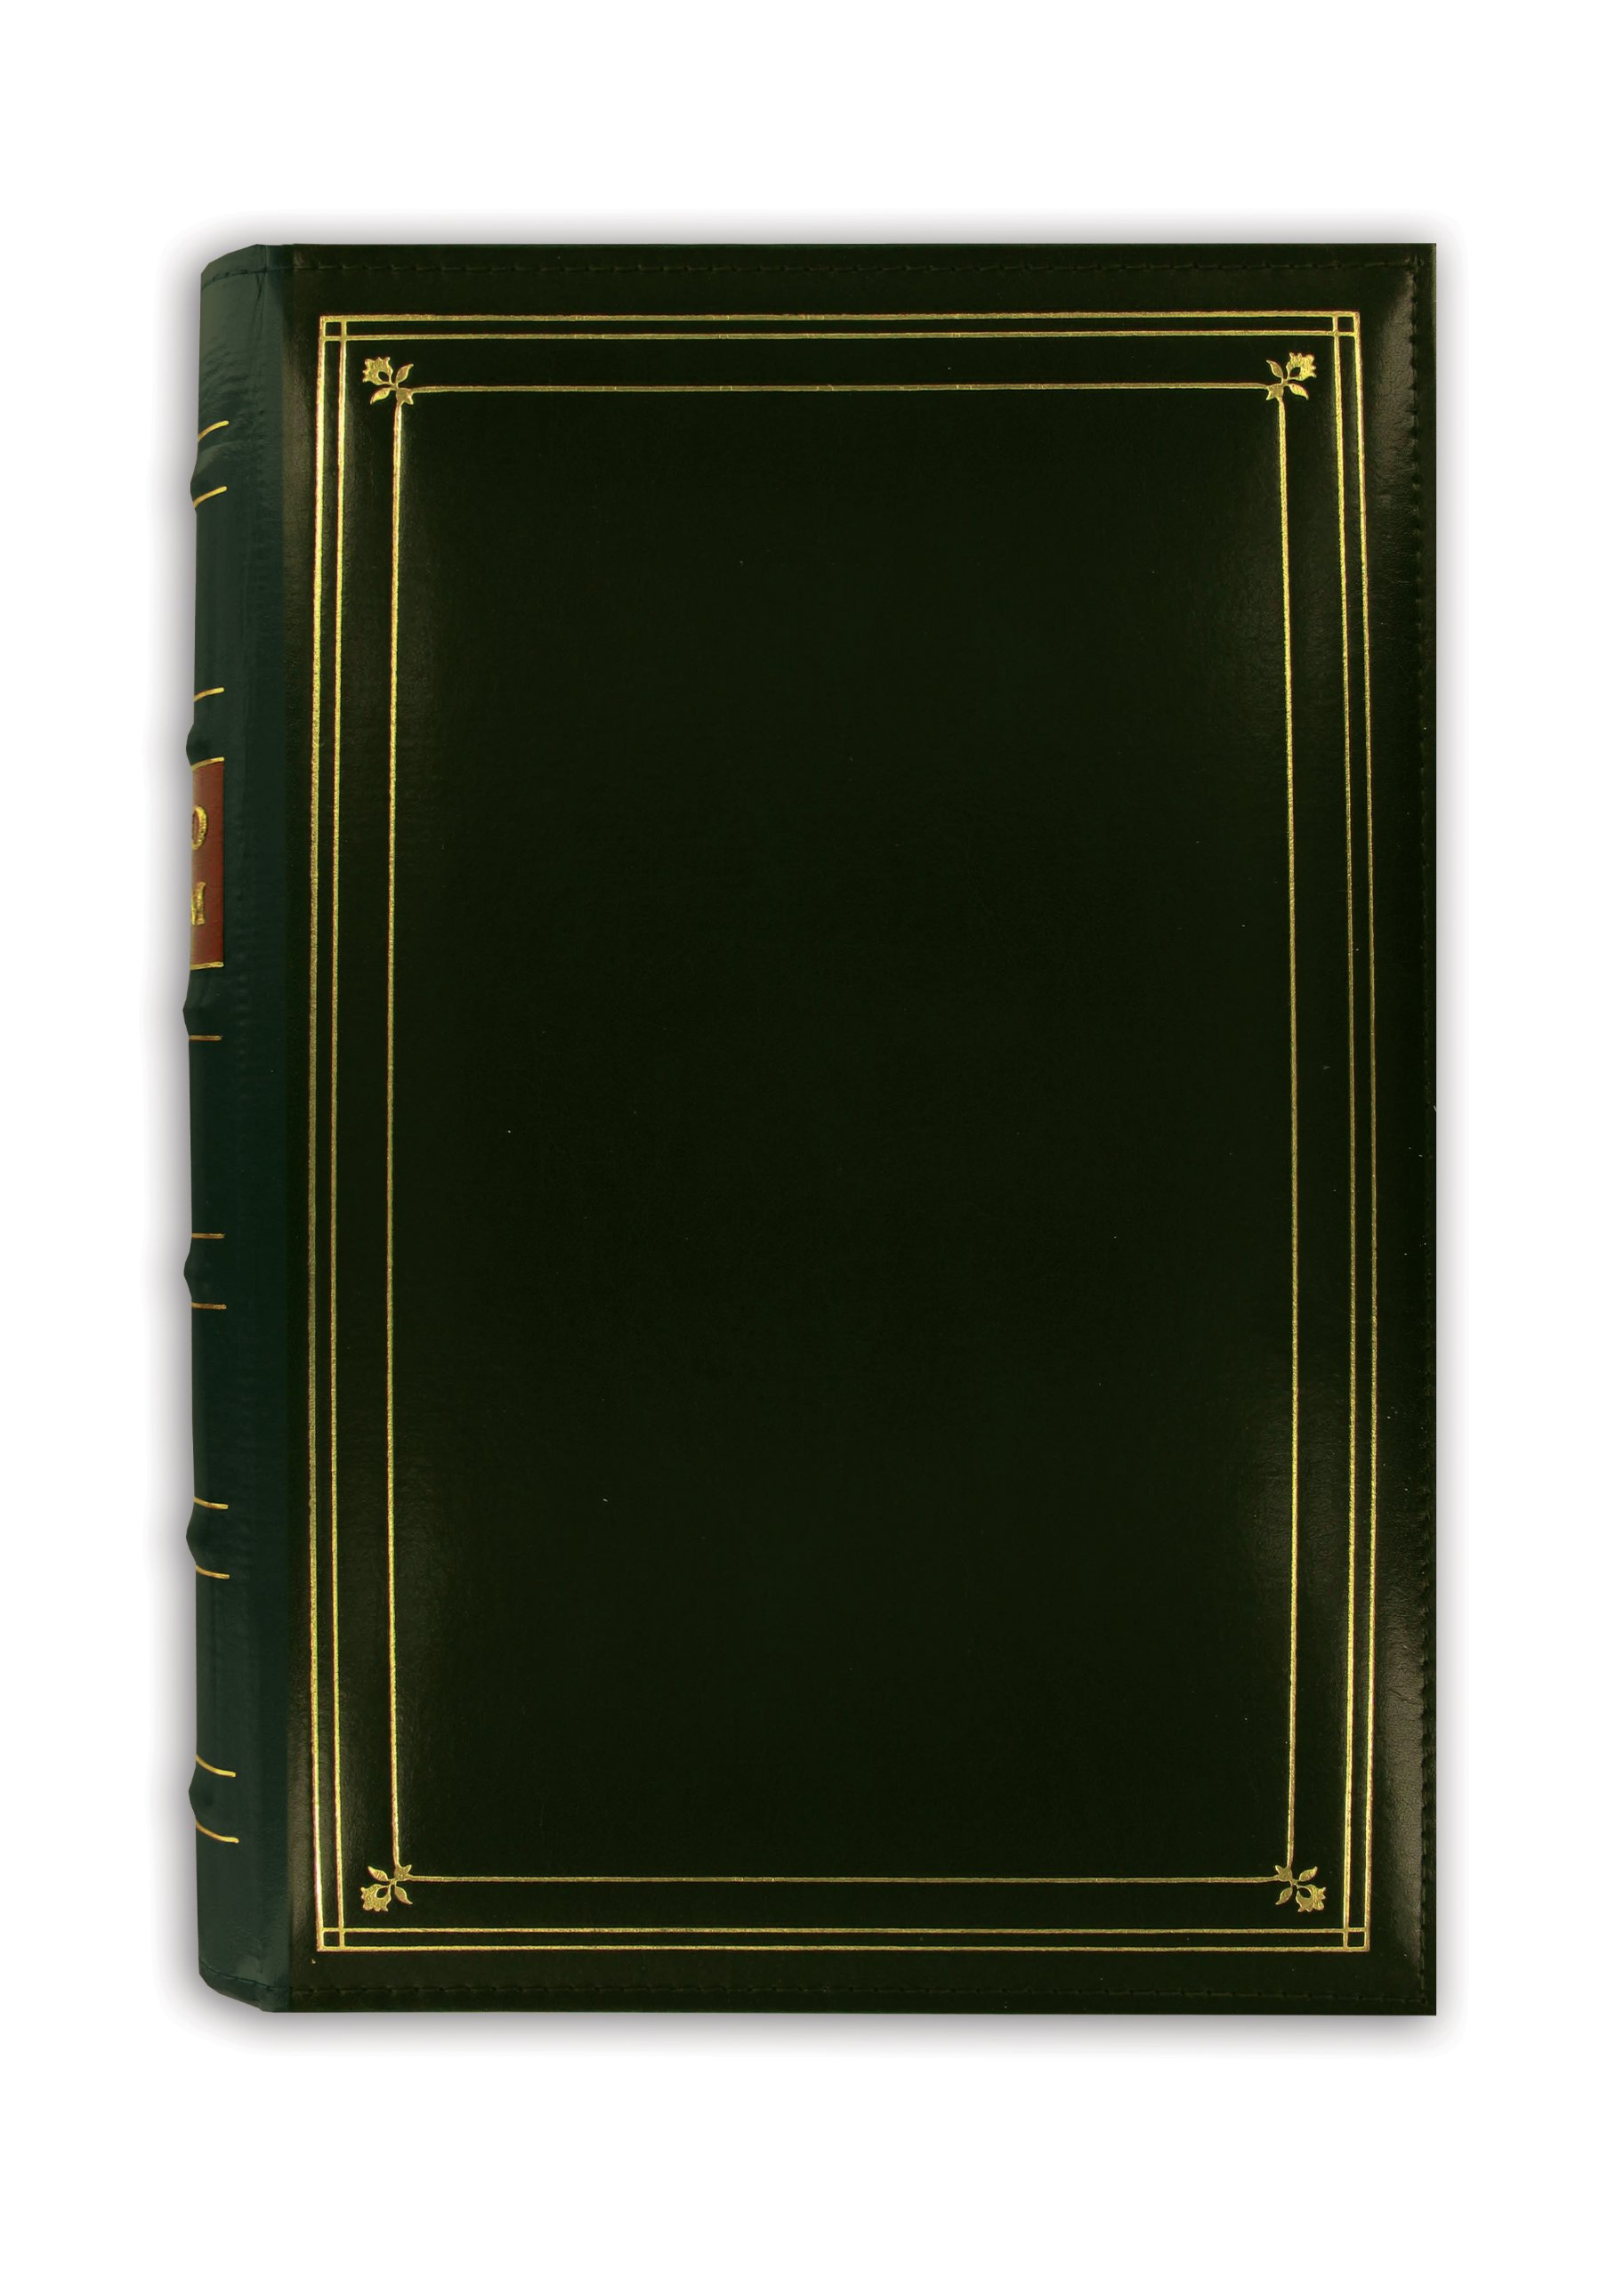 Pioneer Photo 204-Pocket Ring Bound Photo Album for 4 by 6-Inch Prints, Hunter Green Bonded Leather with Gold Accents Cover by Pioneer Photo Albums